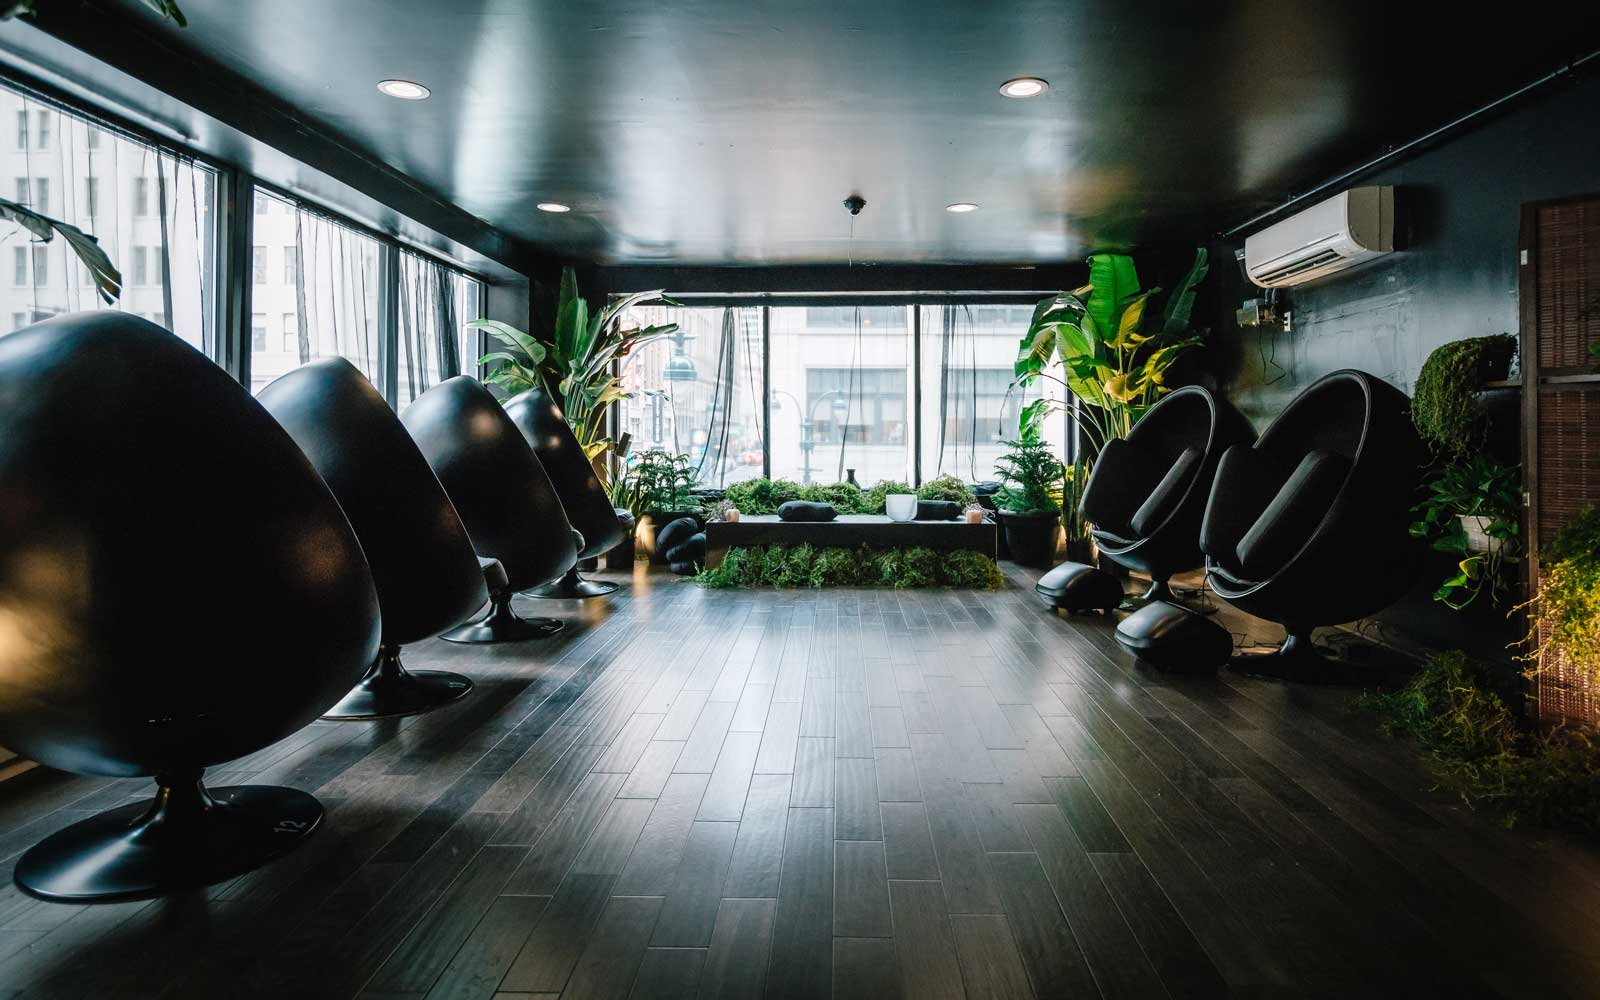 Nap York Is New York City's Coolest New Place to Relax ...